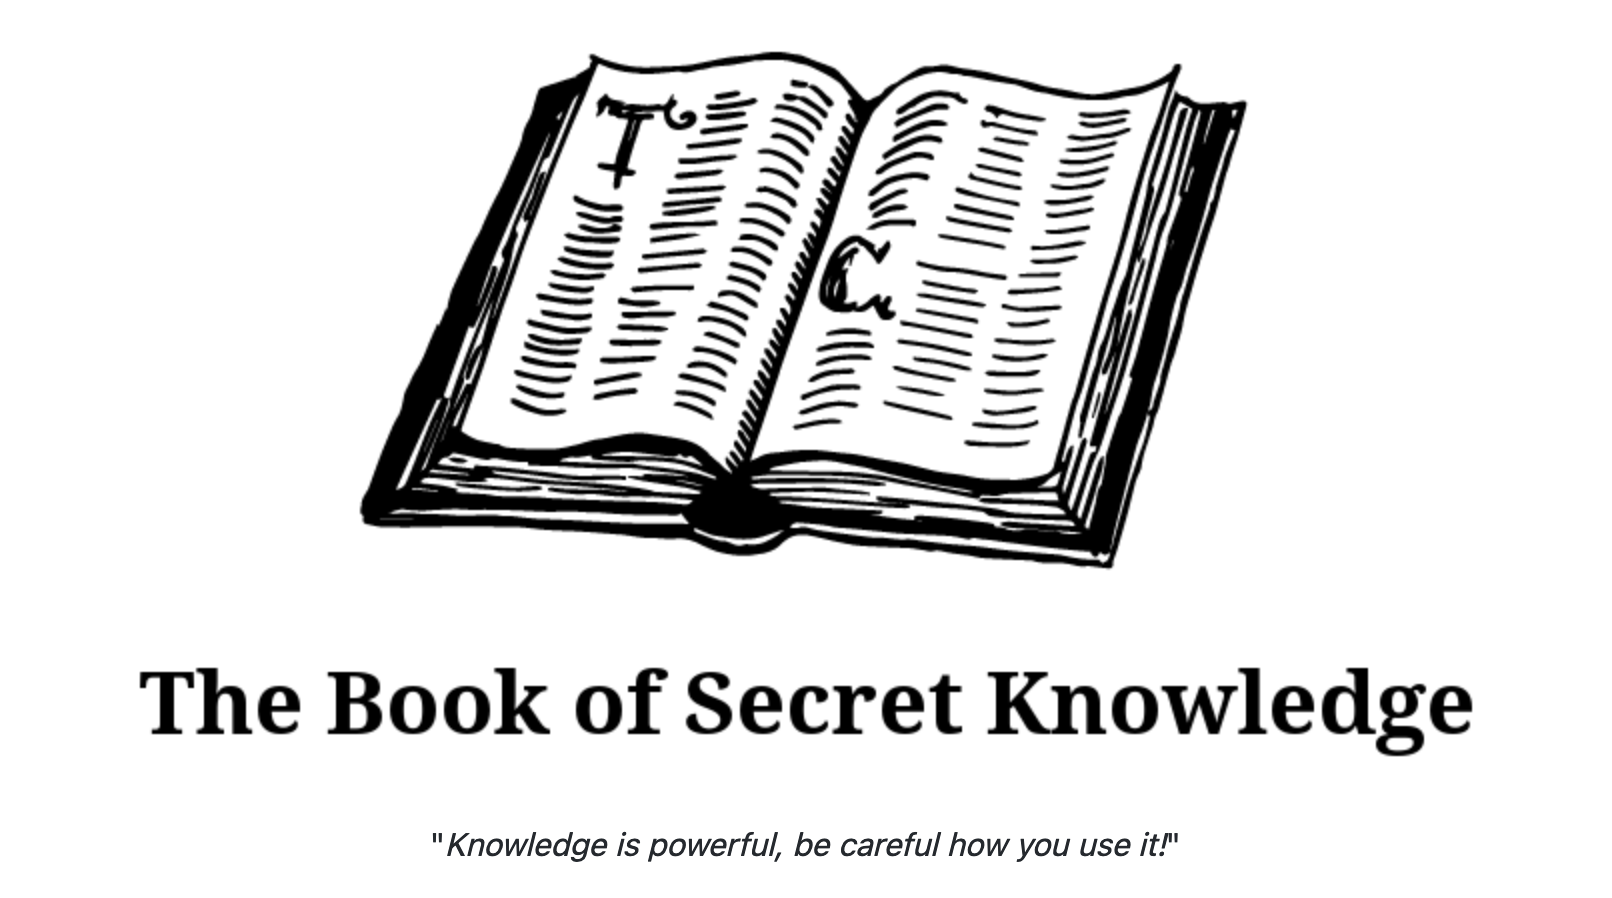 The book of Secret Knowledge – Knowledge is powerful, be careful how you use it.